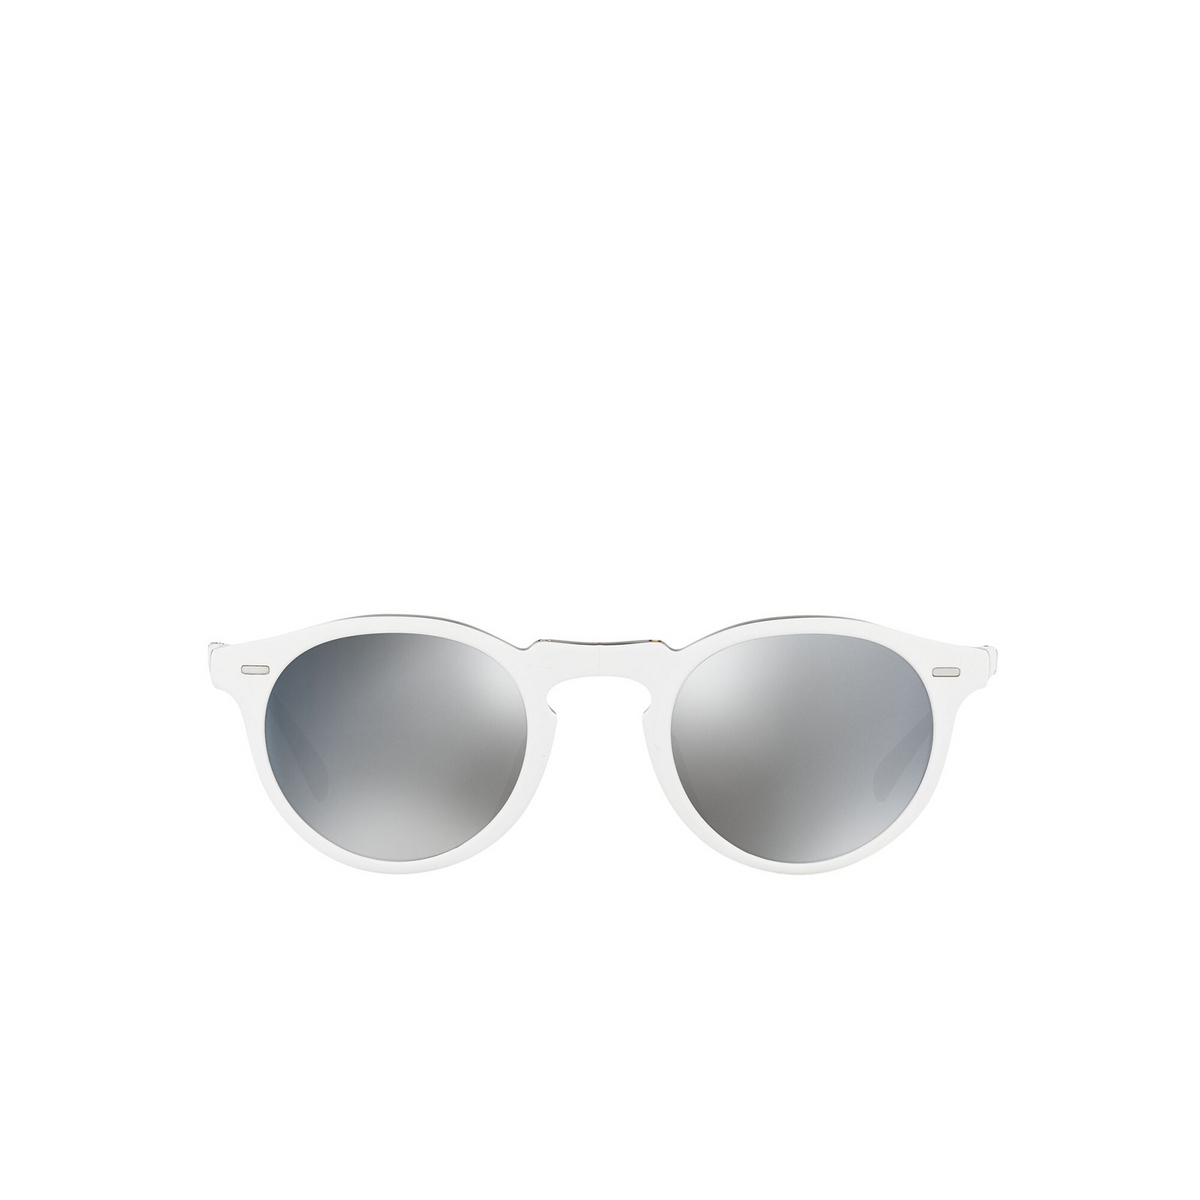 Oliver Peoples® Round Sunglasses: Gregory Peck 1962 OV5456SU color White 168740 - front view.